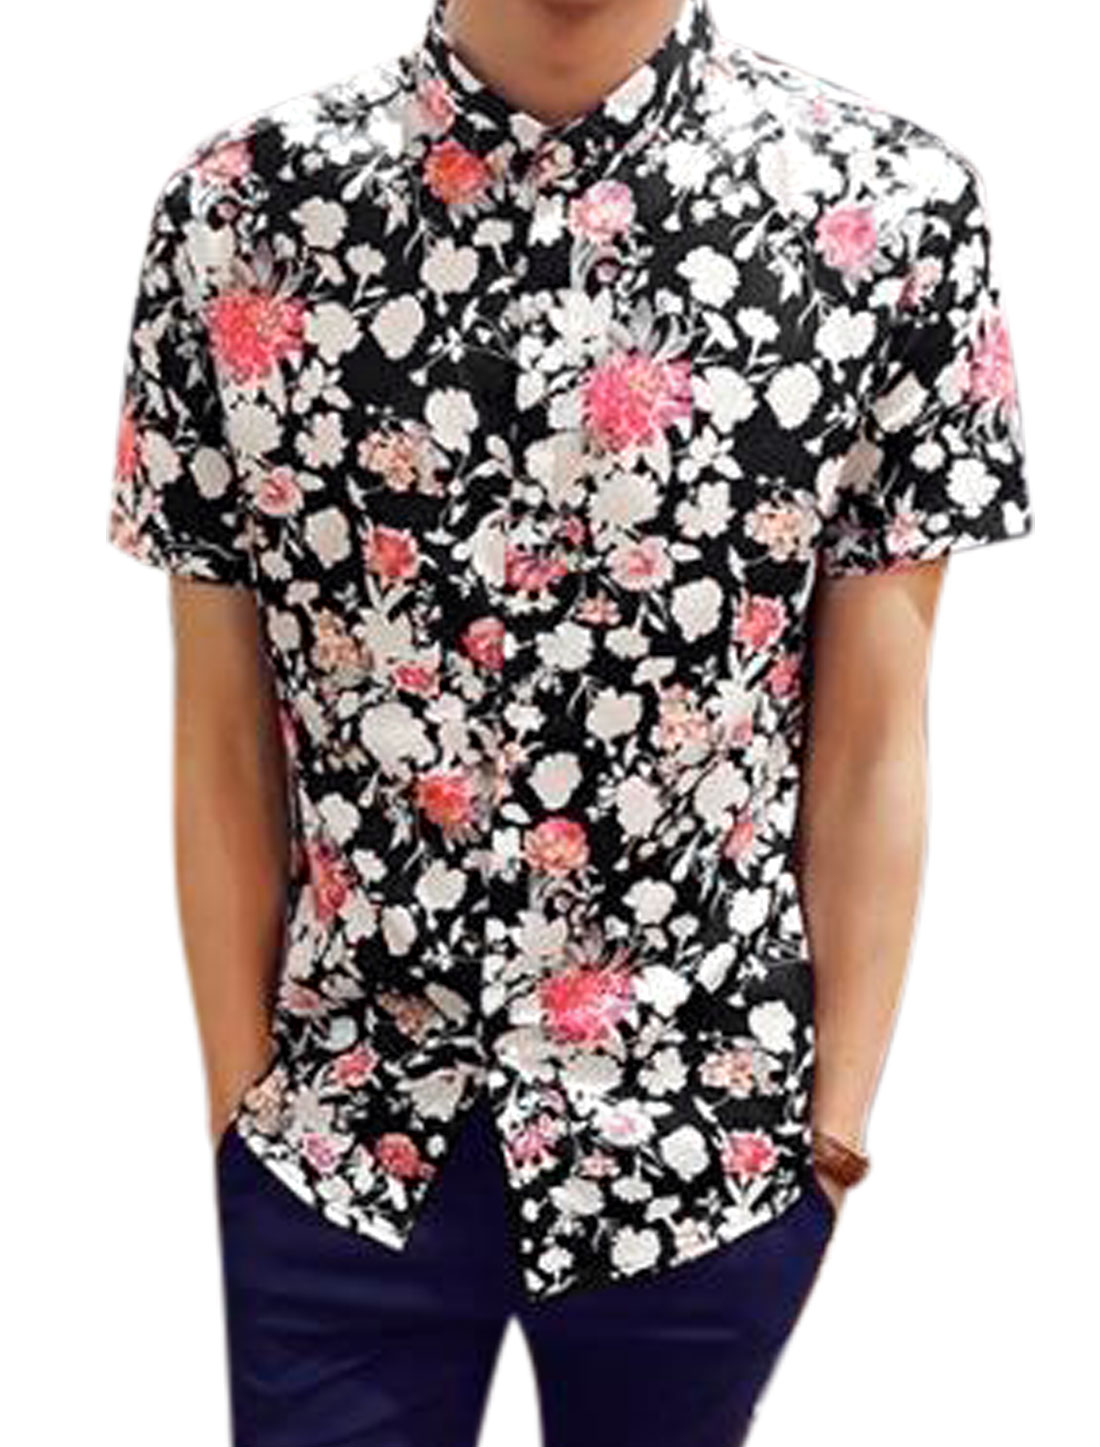 Man Floral Prints Point Collar Single Breasted Leisure Shirt Black S